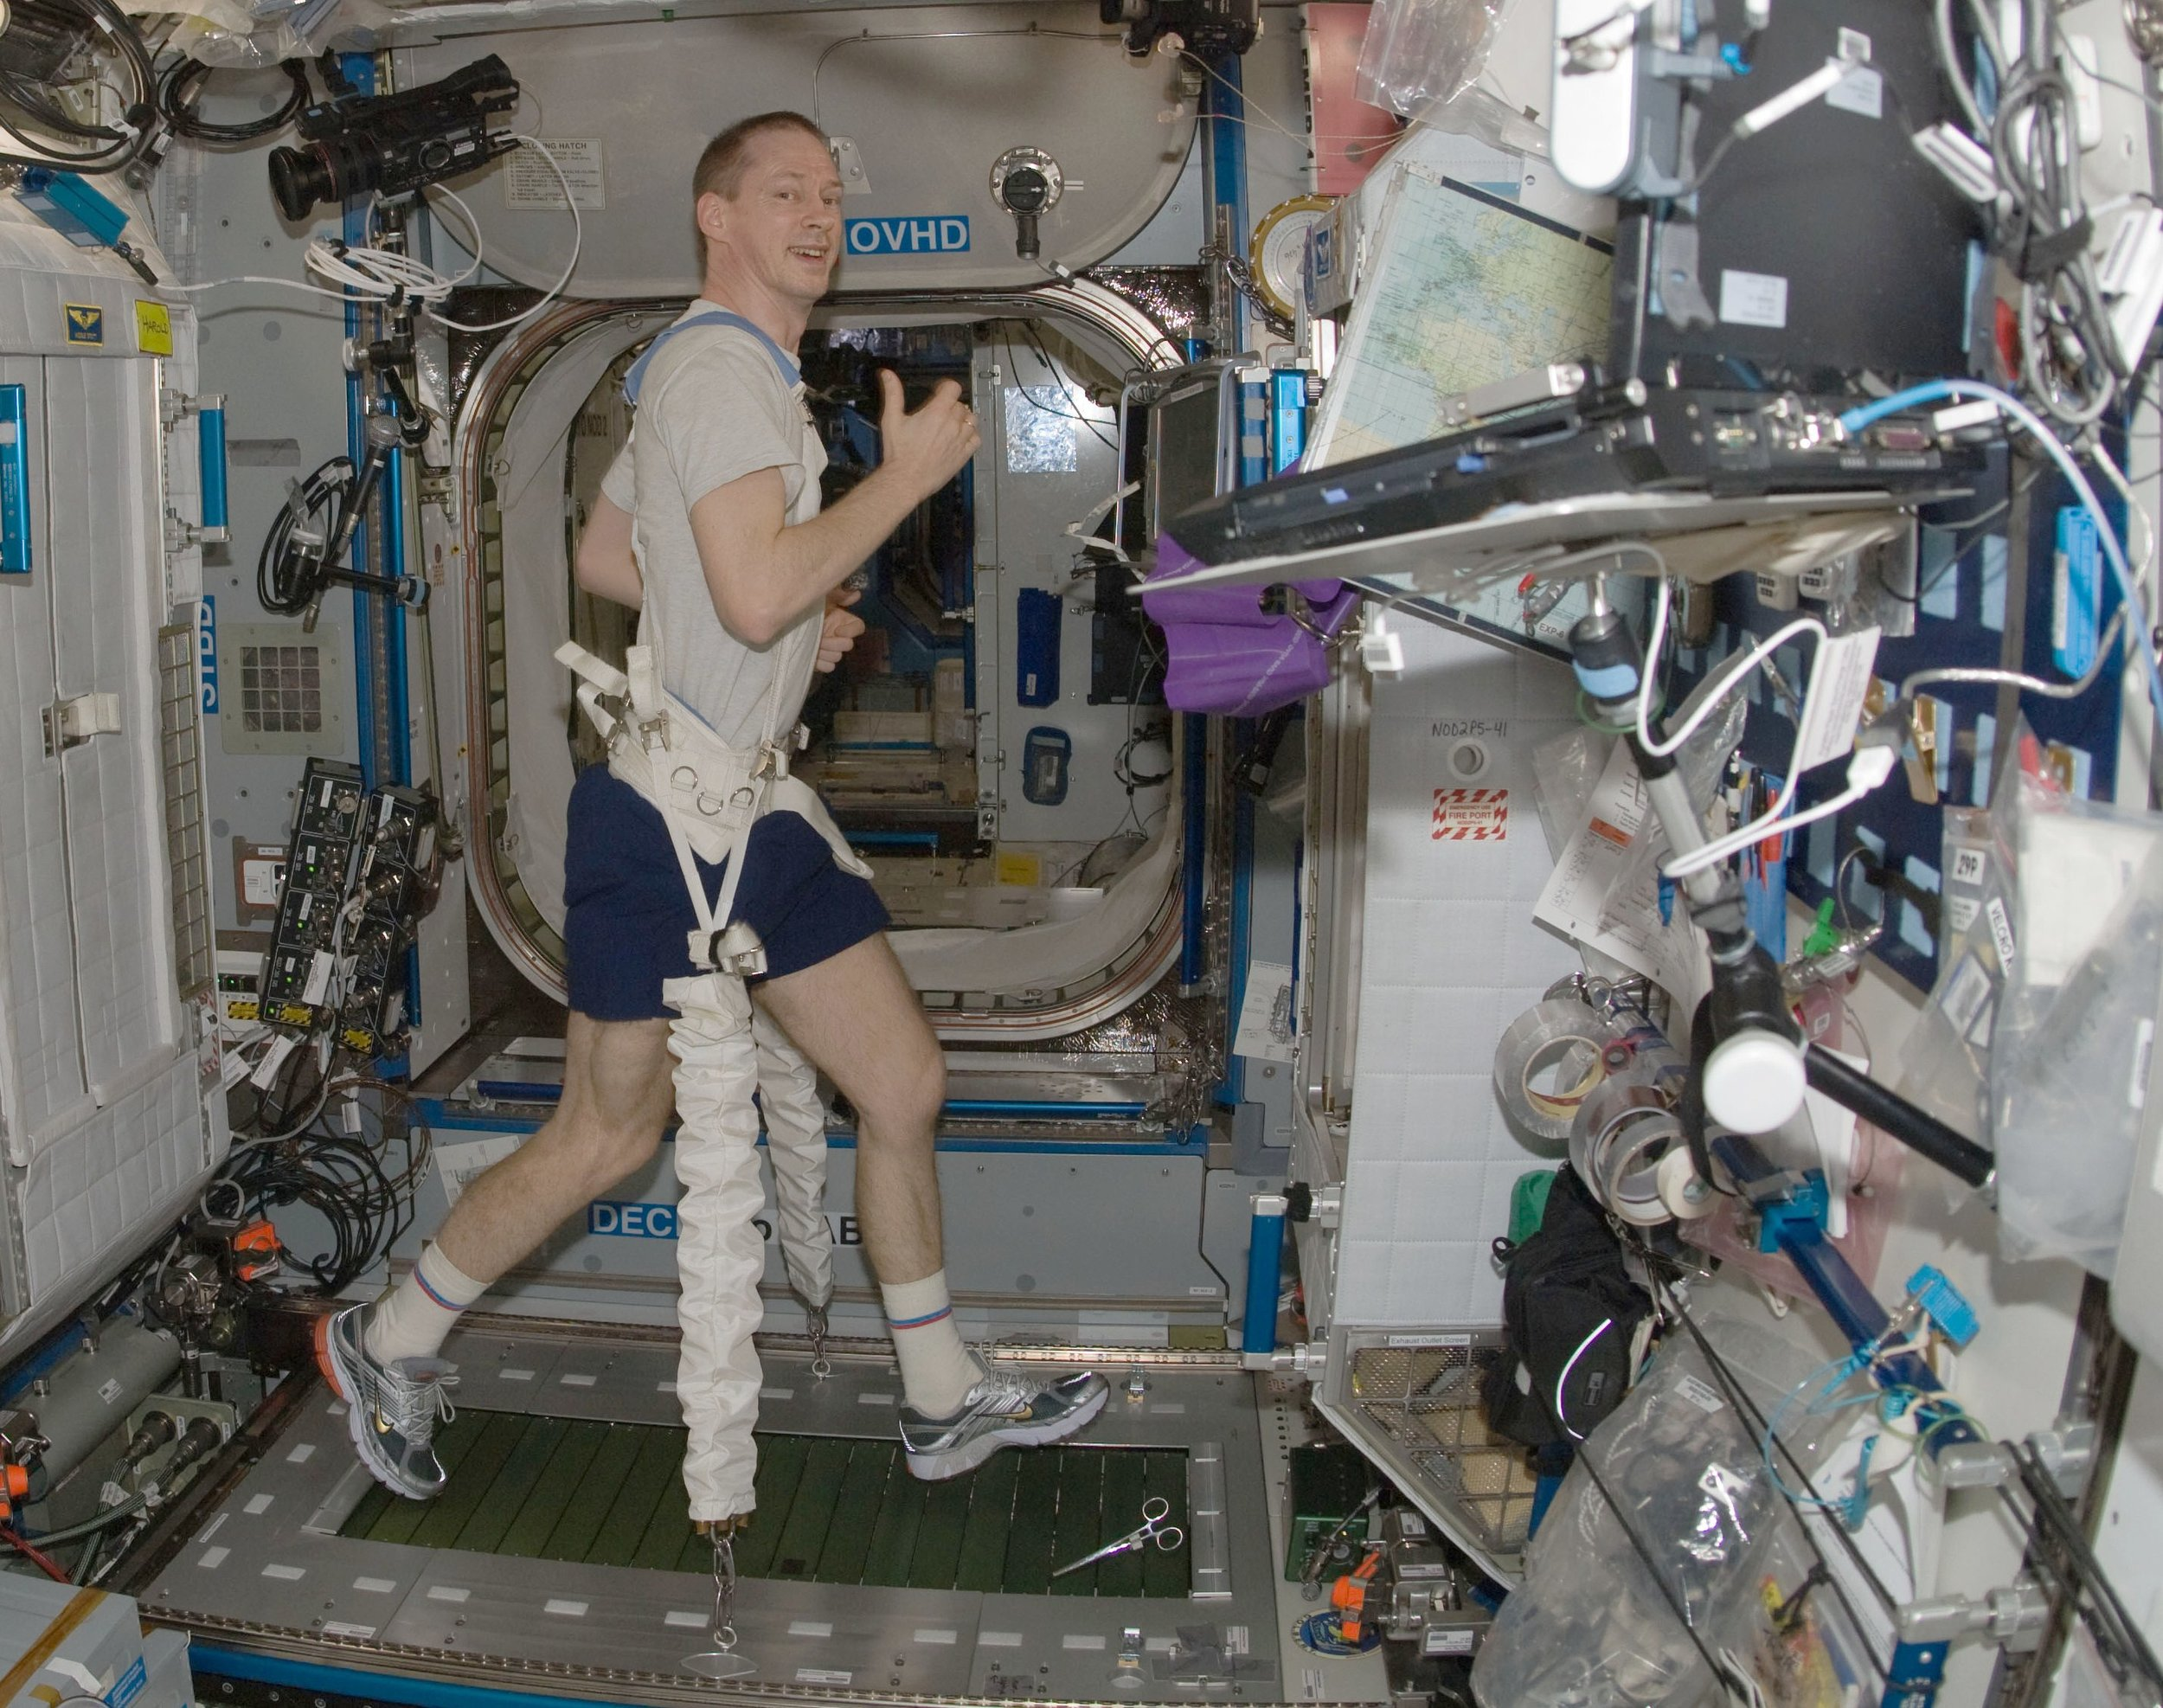 European Space Agency astronaut Frank De Winne exercises on the Combined Operational Load Bearing External Resistance Treadmill (COLBERT) on the International Space Station.   NASA/Wikimedia Commons  (public domain)